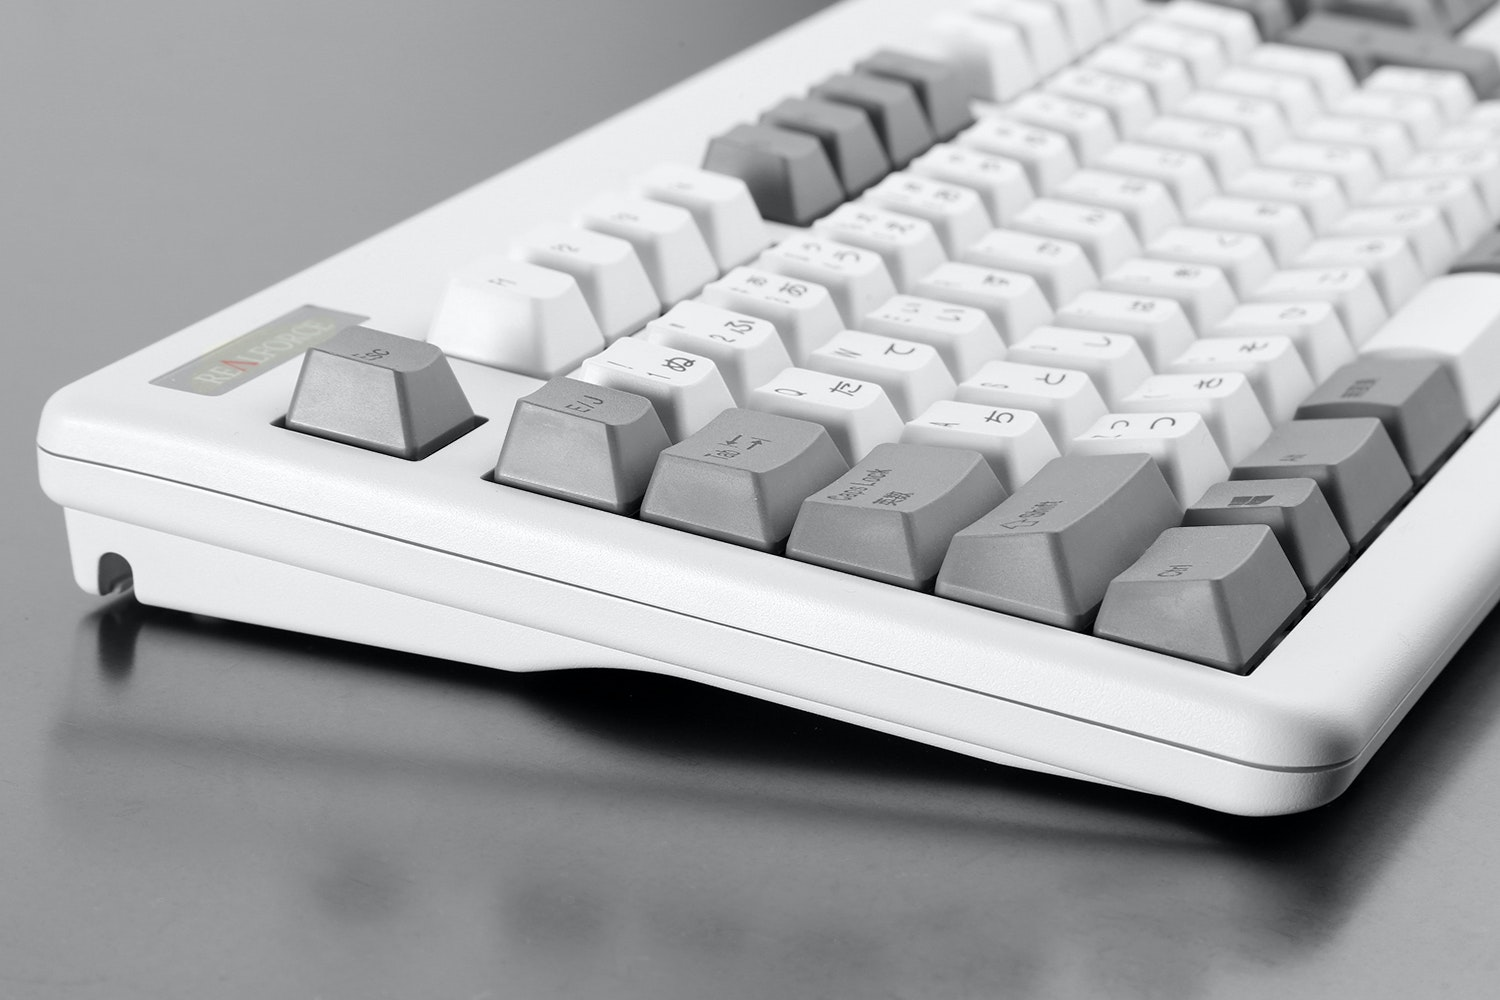 Topre Realforce 91U JIS Layout Keyboard